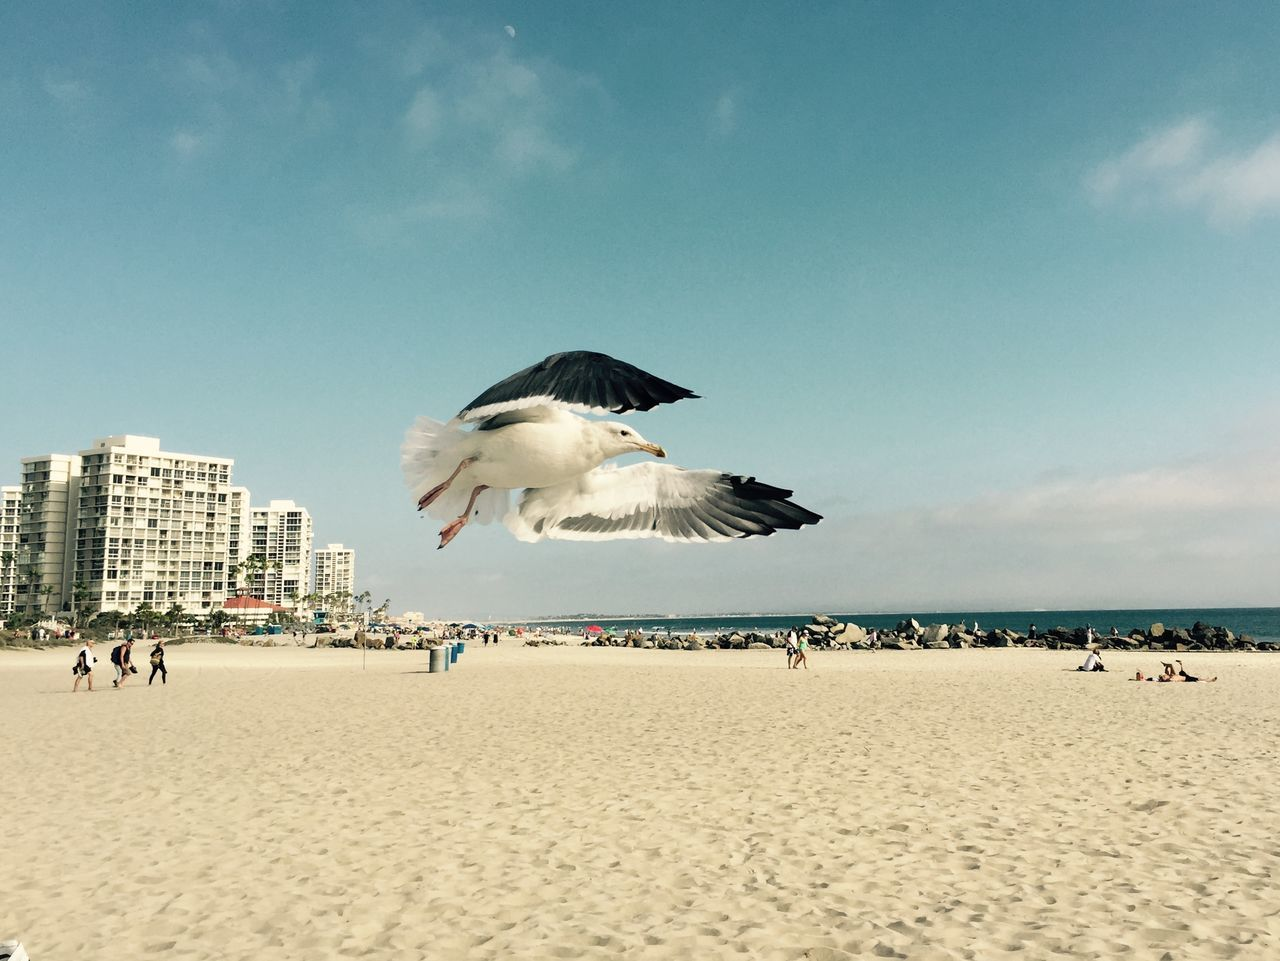 Seagull Air Dancing Seagulls Coronado Beach California Birds Dancing San Diego Summer Coast WestCoast